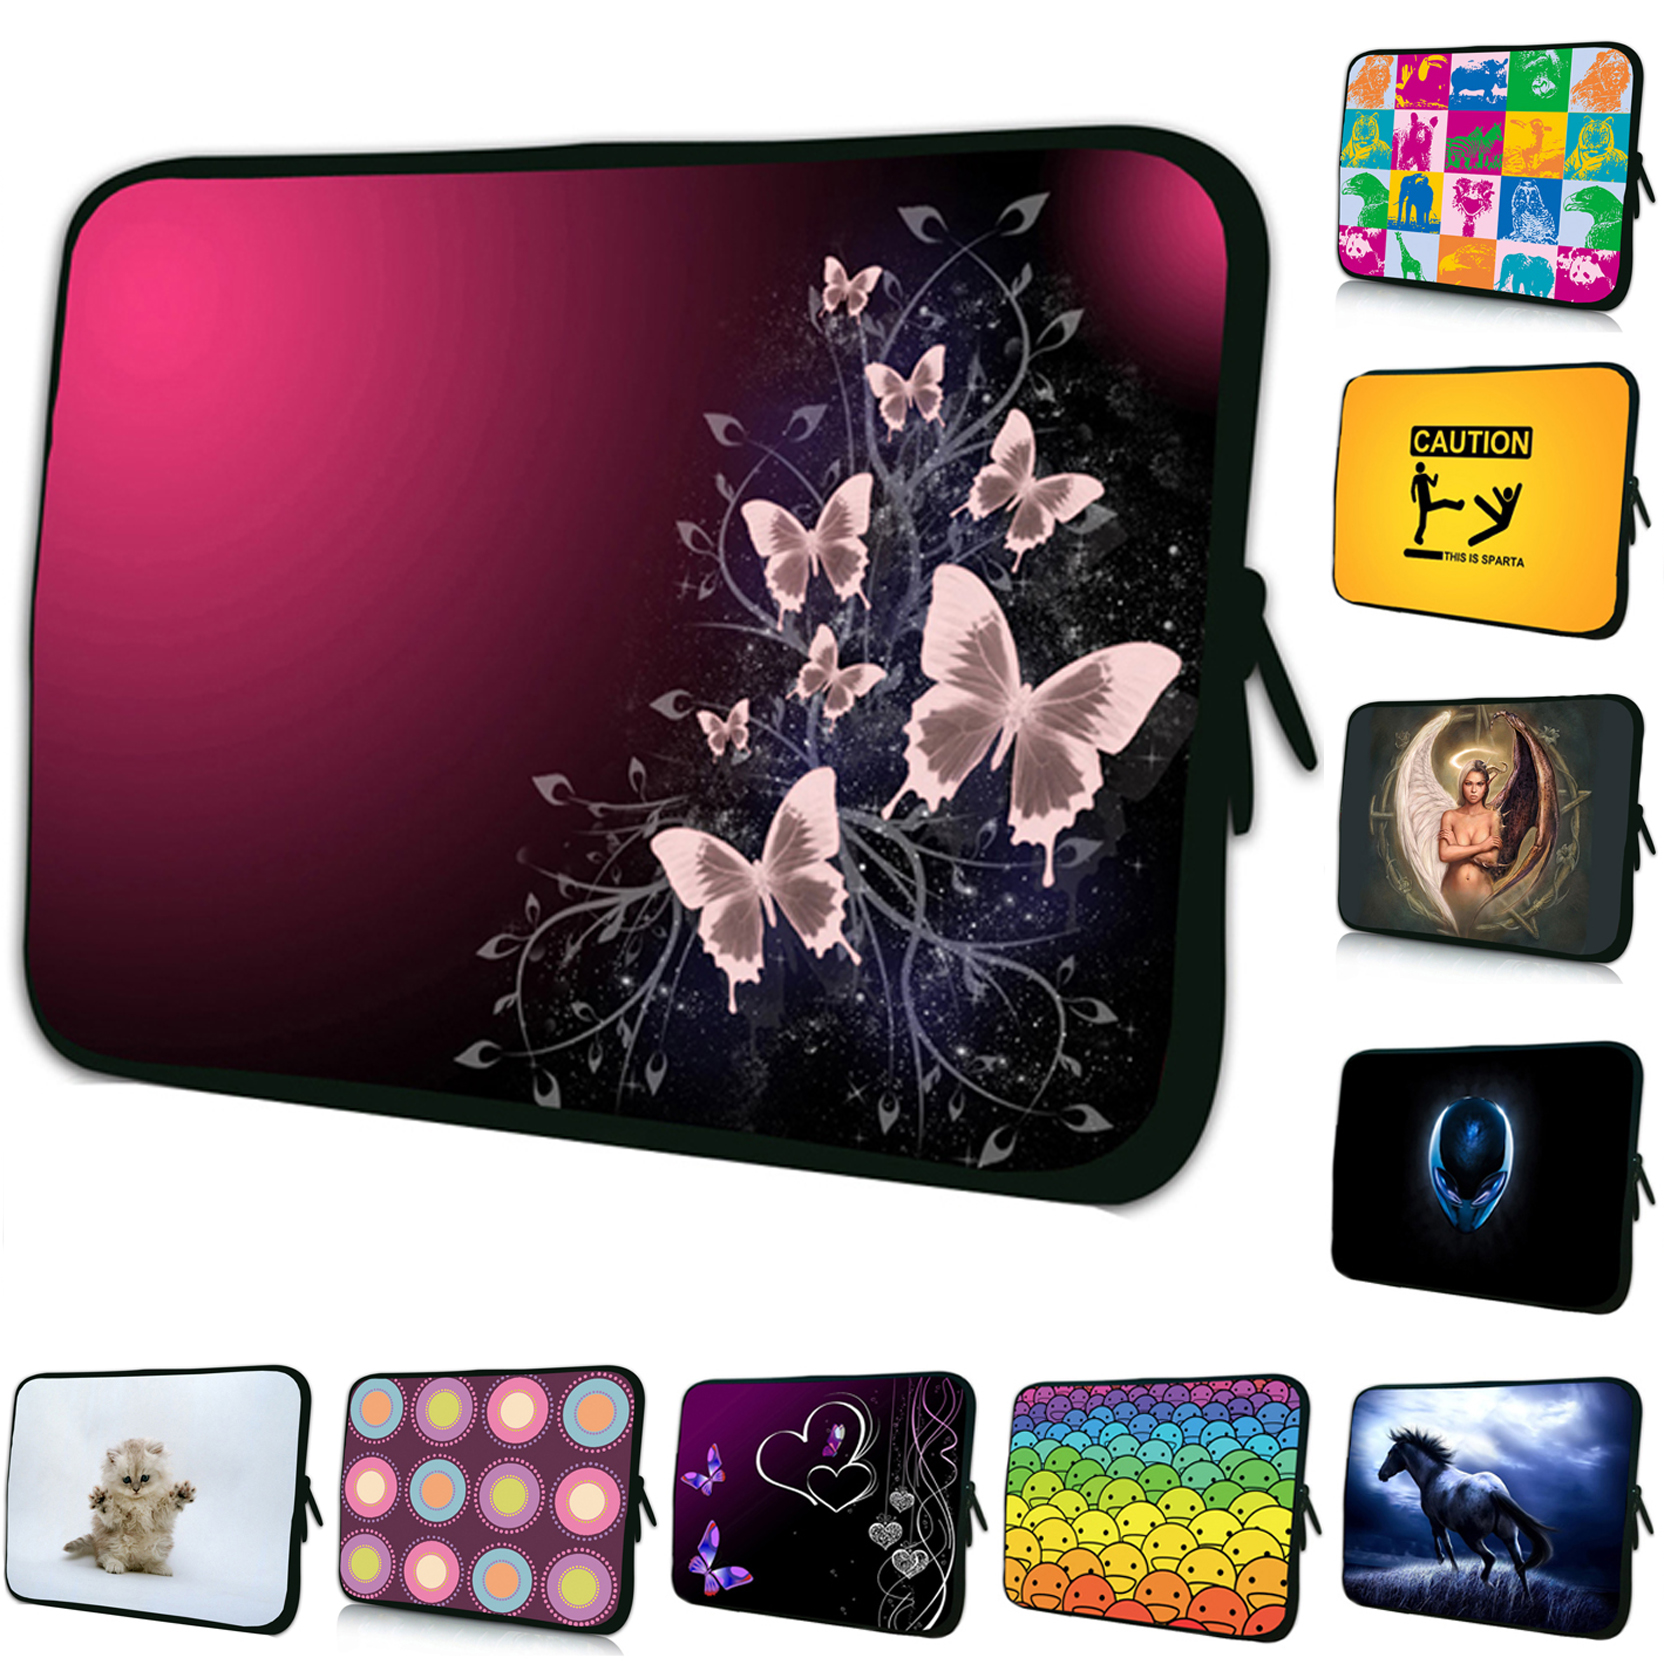 Girl's Sleeve Soft 7 inch Tablet PC Netbook Cases For 7 8.0 7.9 7.7 inch Amazon Kindle Samsung Galaxy Tab 8.0 Apple Ipad Mini PC waterproof zipper 10 inch 10 1 9 7 tablet netbook pc sleeve bag soft portable cover cases pouch for ipad air 9 7 1st 2 2nd 4th